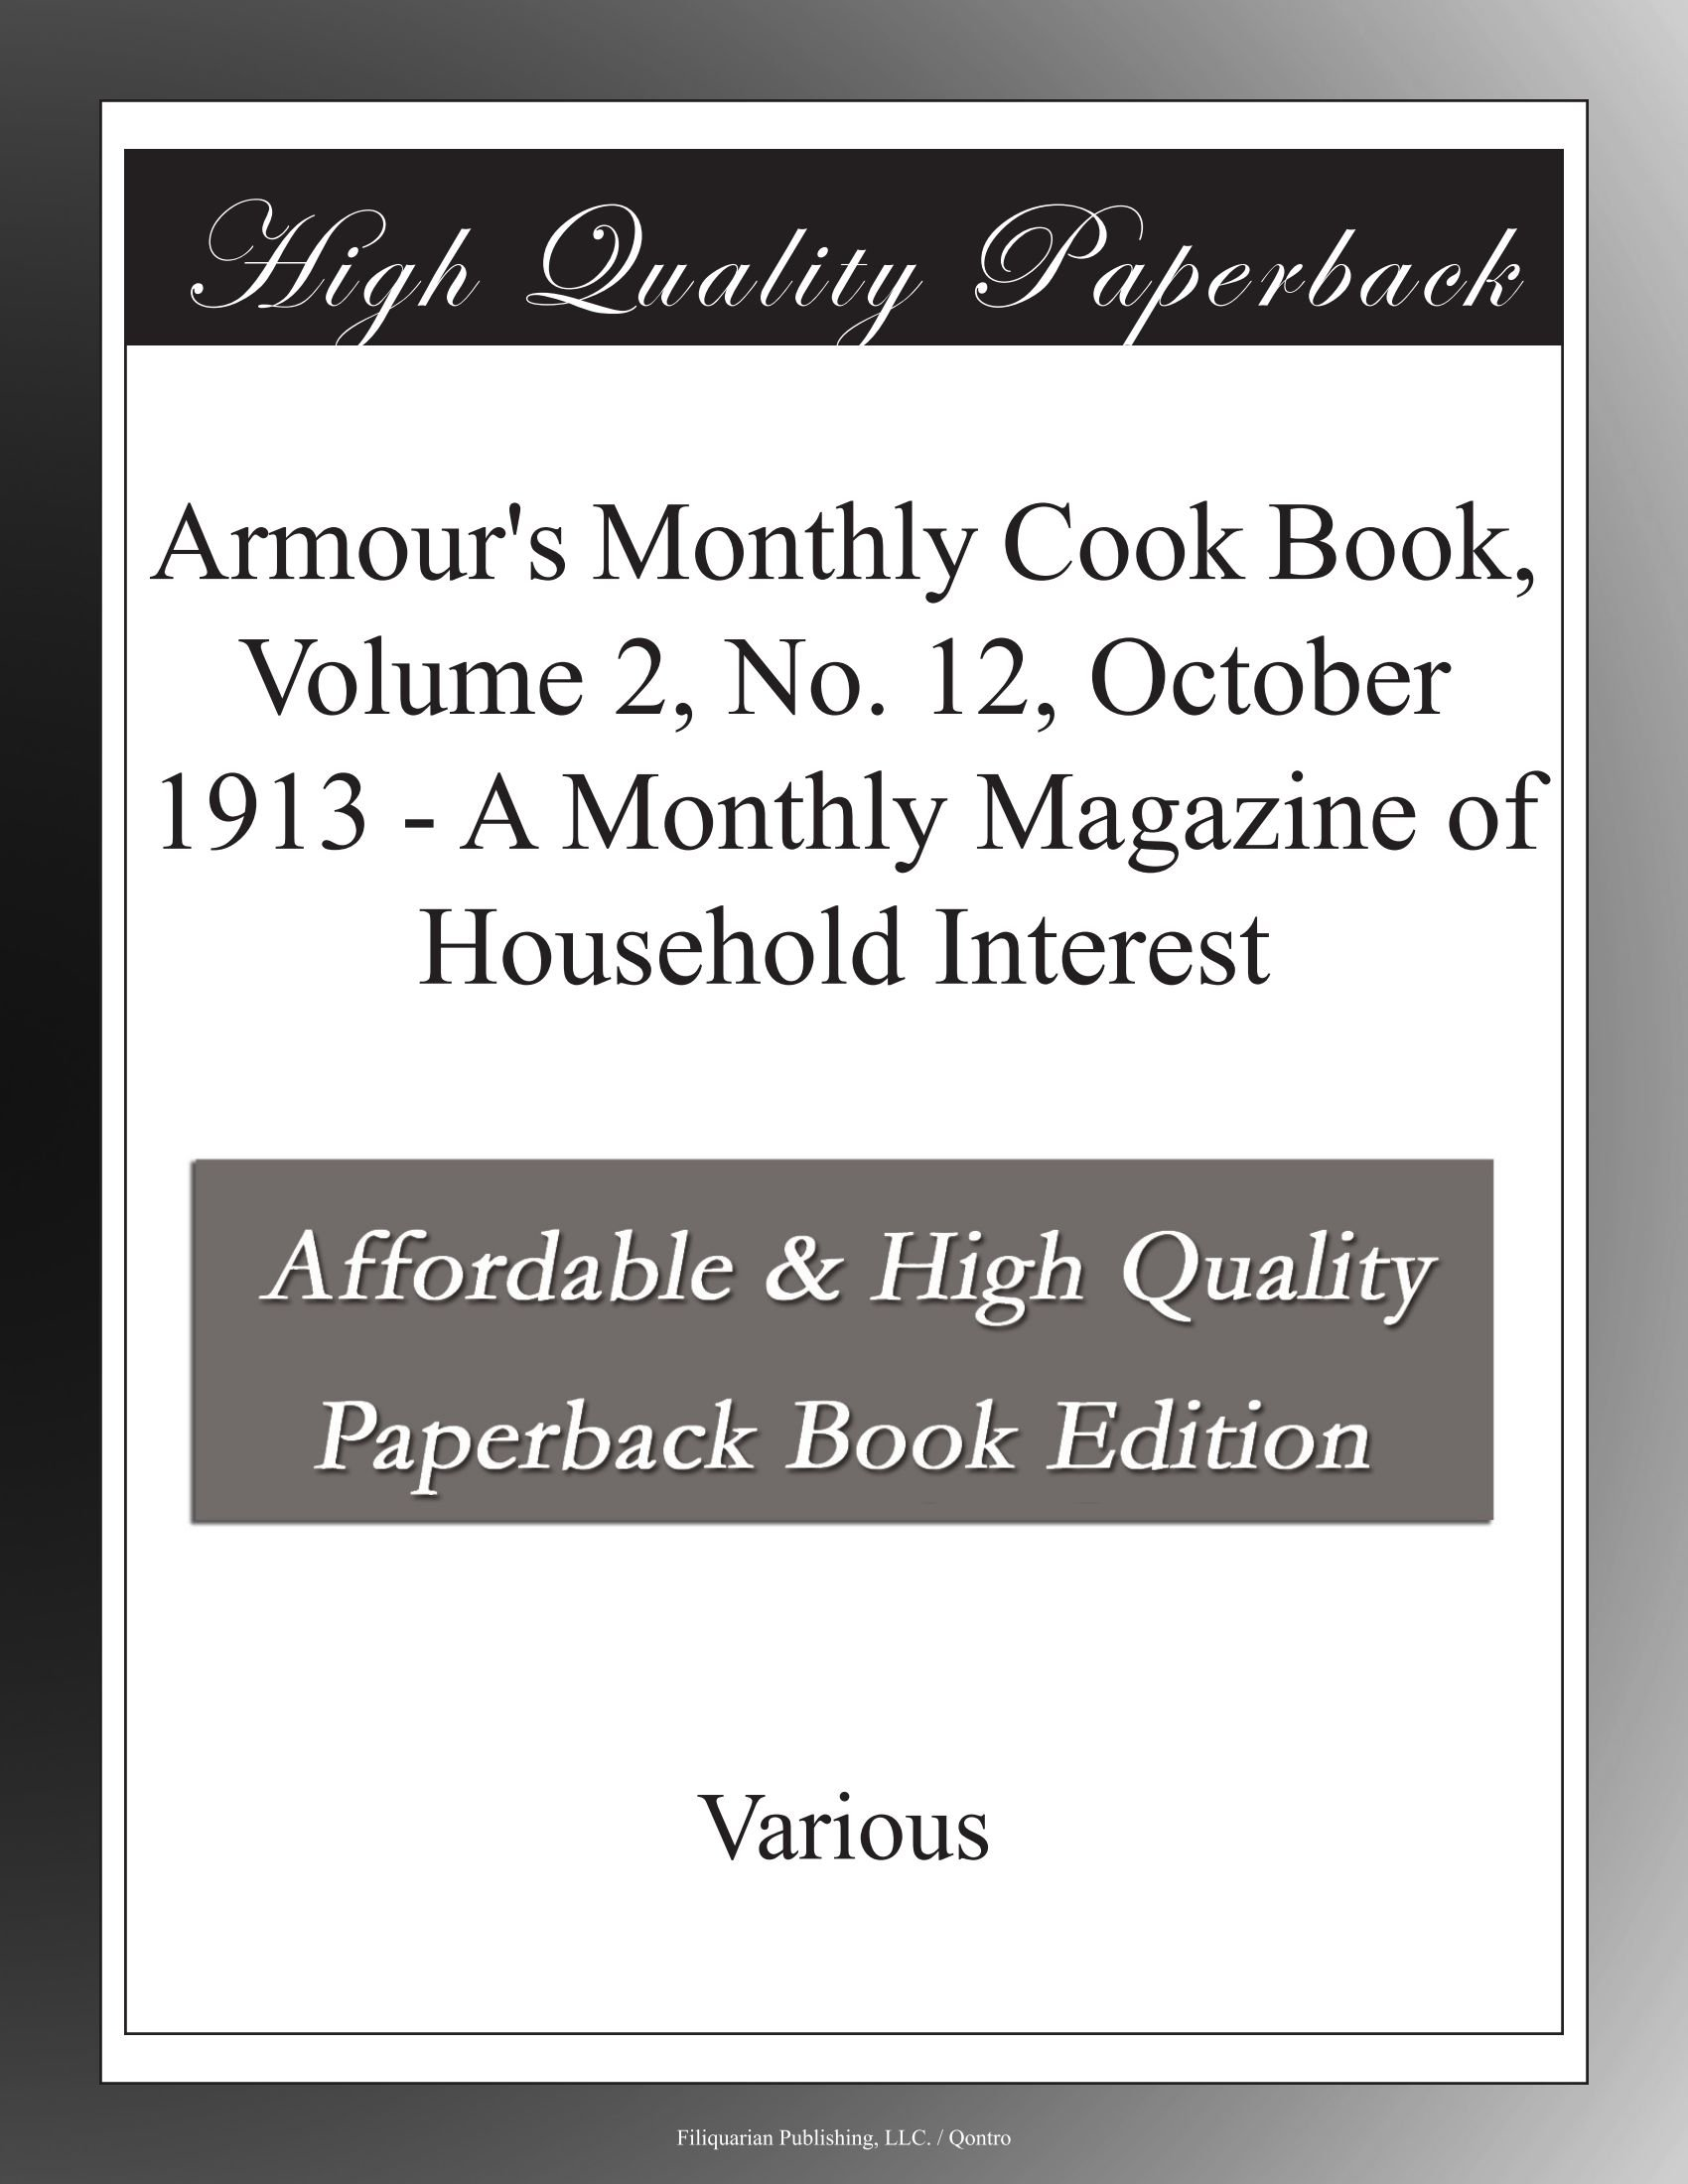 Armour's Monthly Cook Book, Volume 2, No. 12, October 1913 - A Monthly Magazine of Household Interest ebook